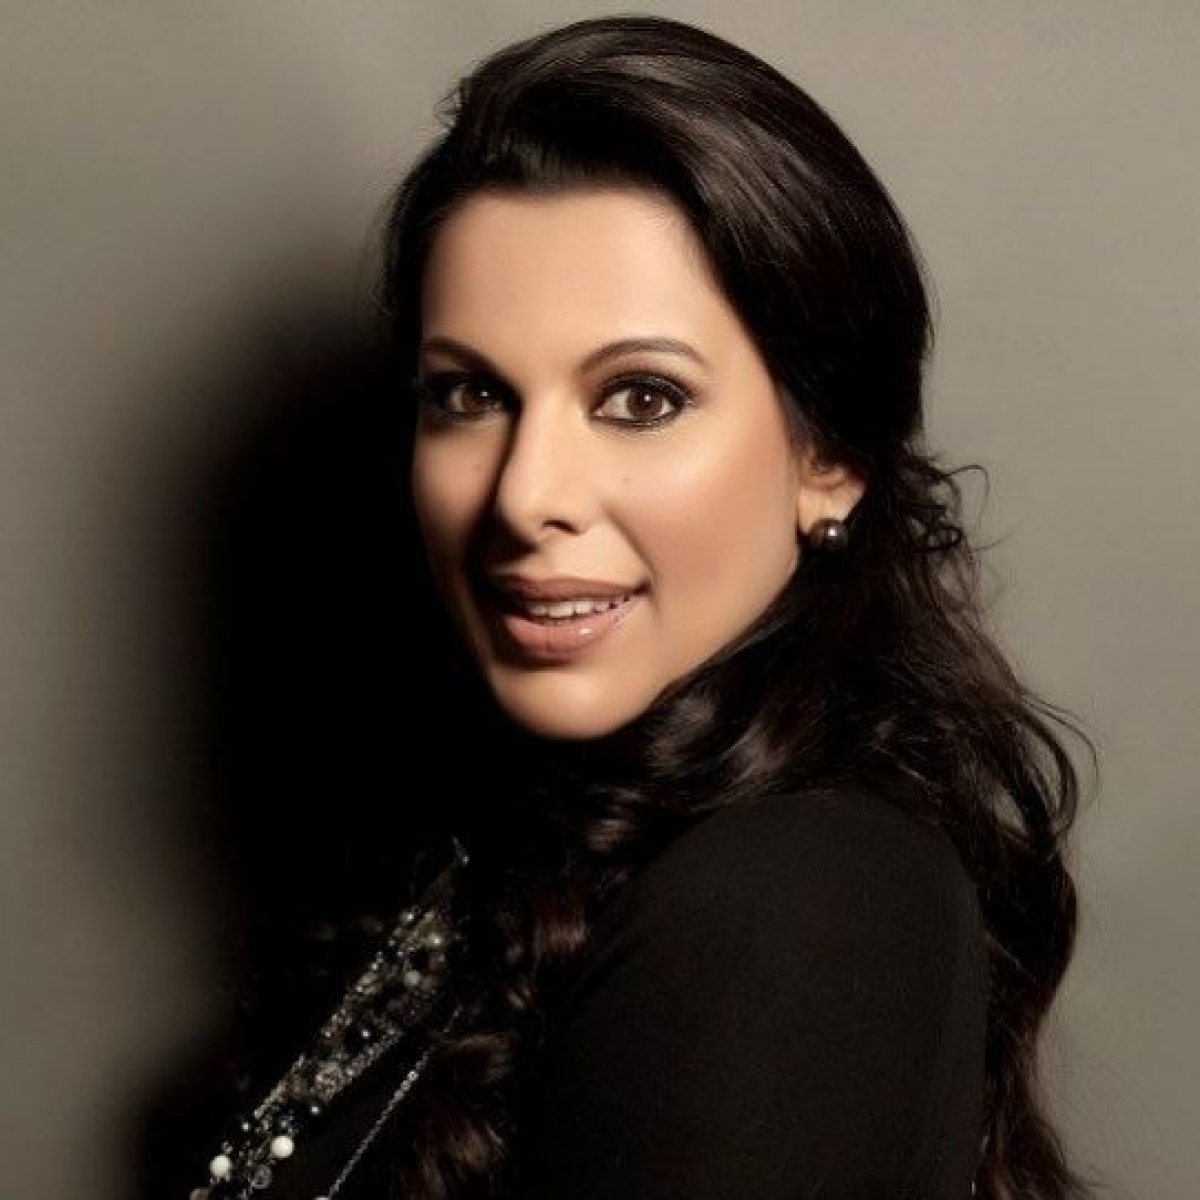 'Goa has too much Feni': Pooja Bedi slammed for spreading 'misinformation' by giving medical advice on Twitter